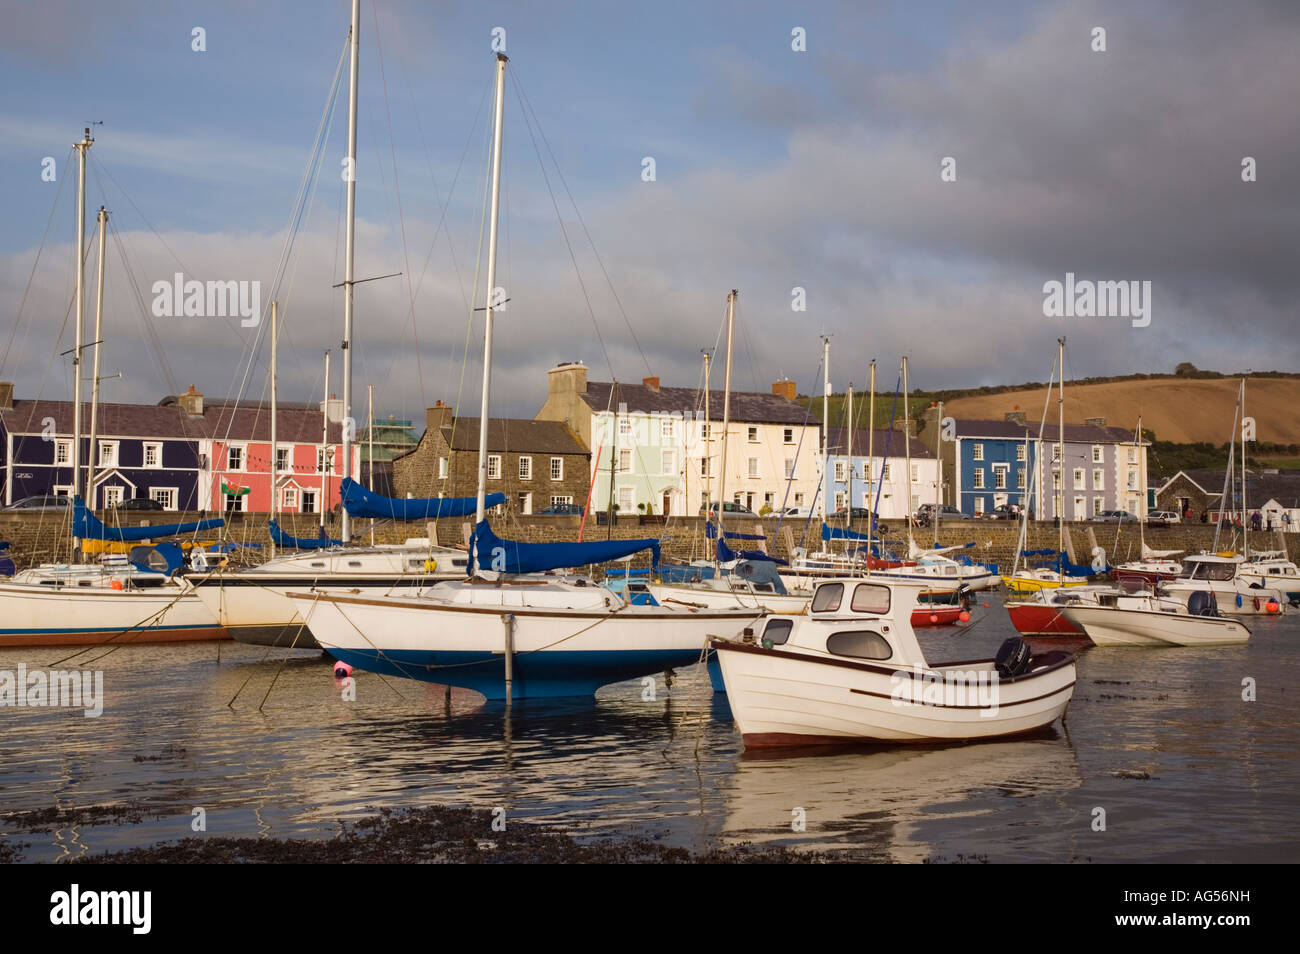 View across muddy harbour at low tide with boats moored and quayside houses in seaside town Aberaeron Ceredigion - Stock Image